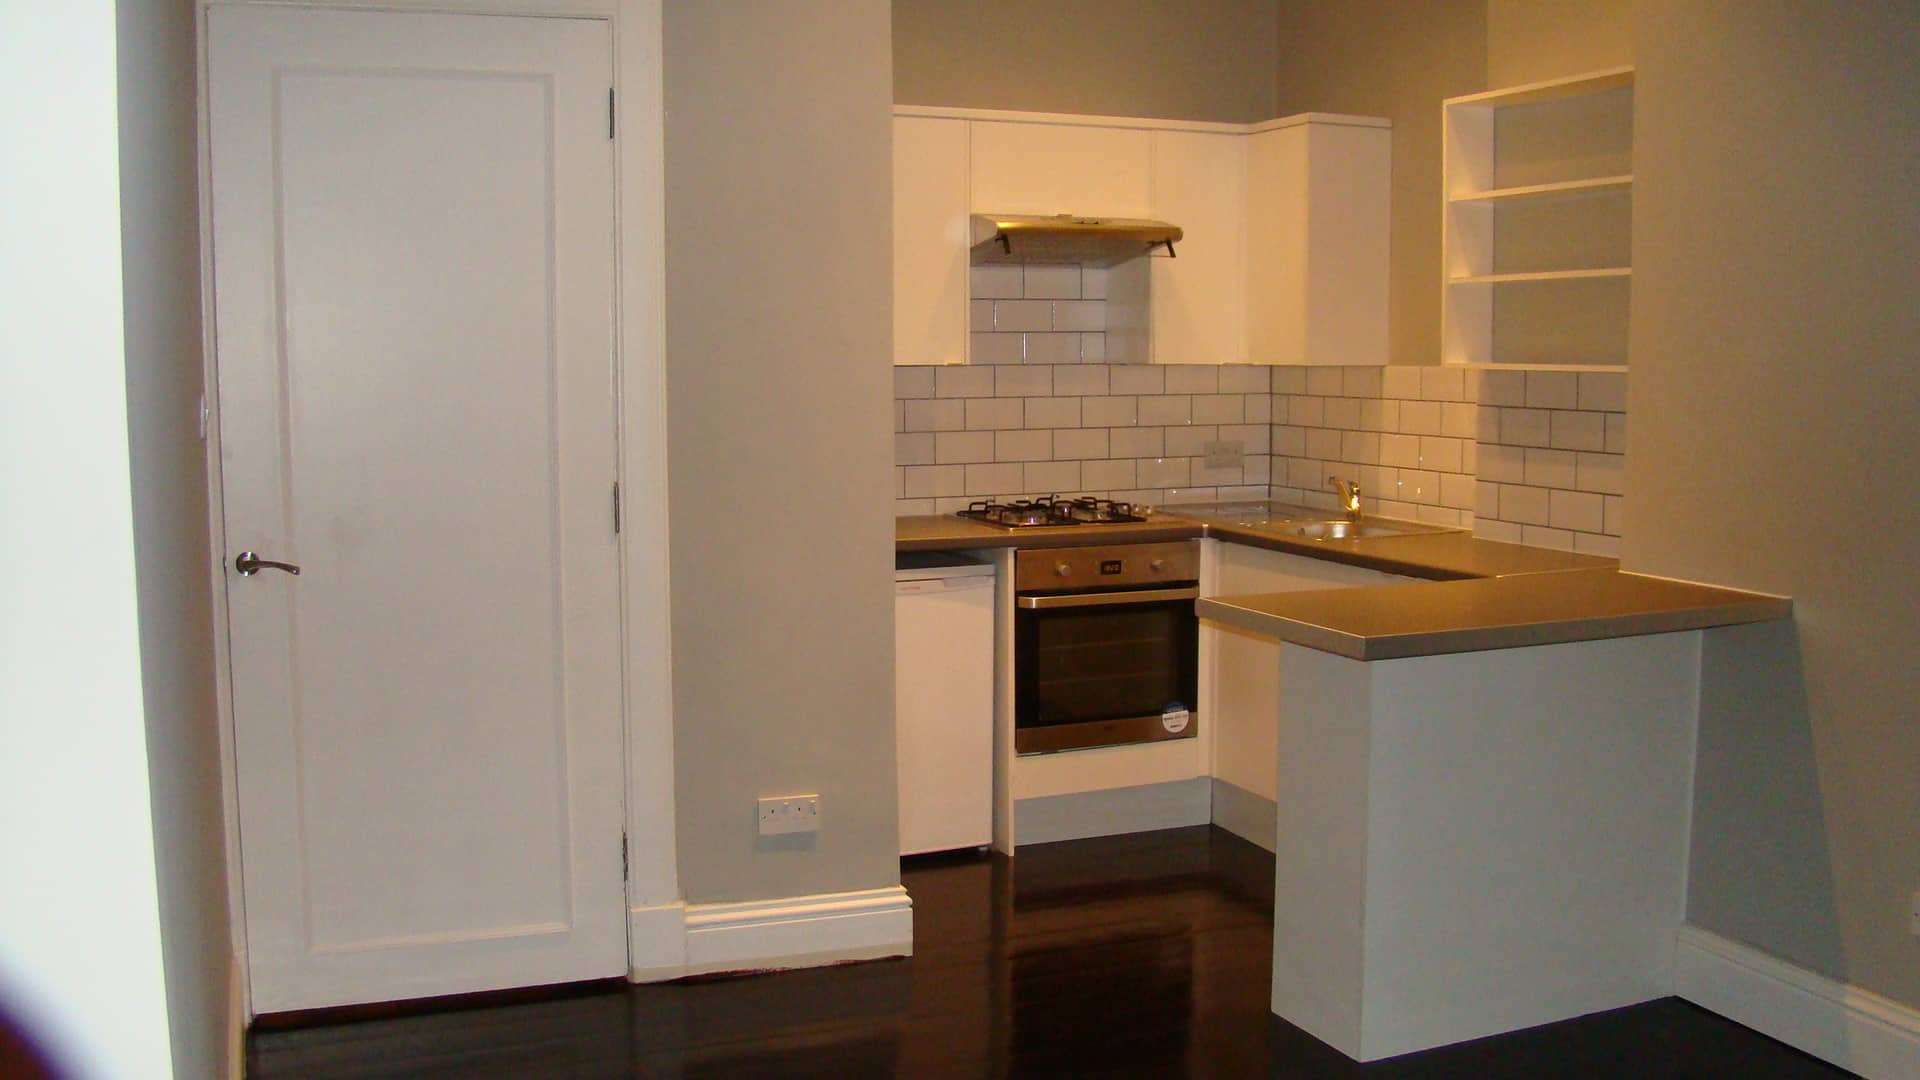 Fully fitted kitchen, new floor, and door.